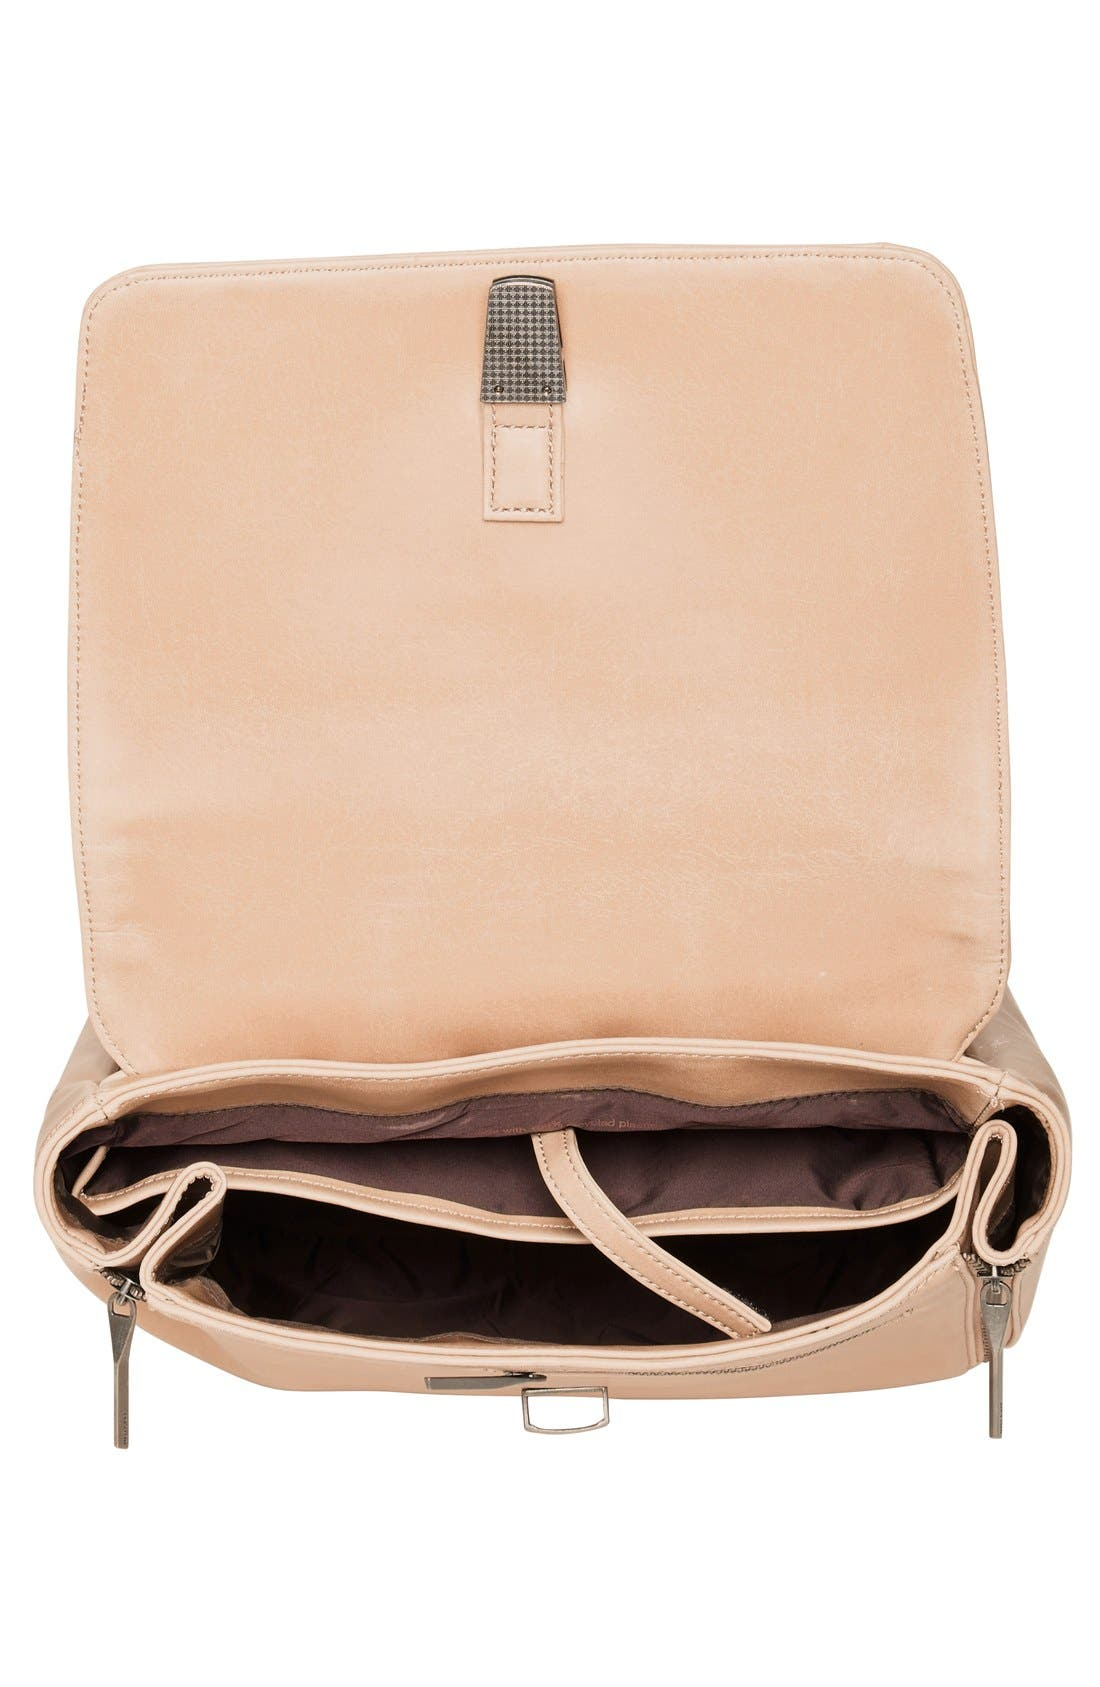 'Fabi' Faux Leather Laptop Backpack,                             Alternate thumbnail 4, color,                             Cardamom